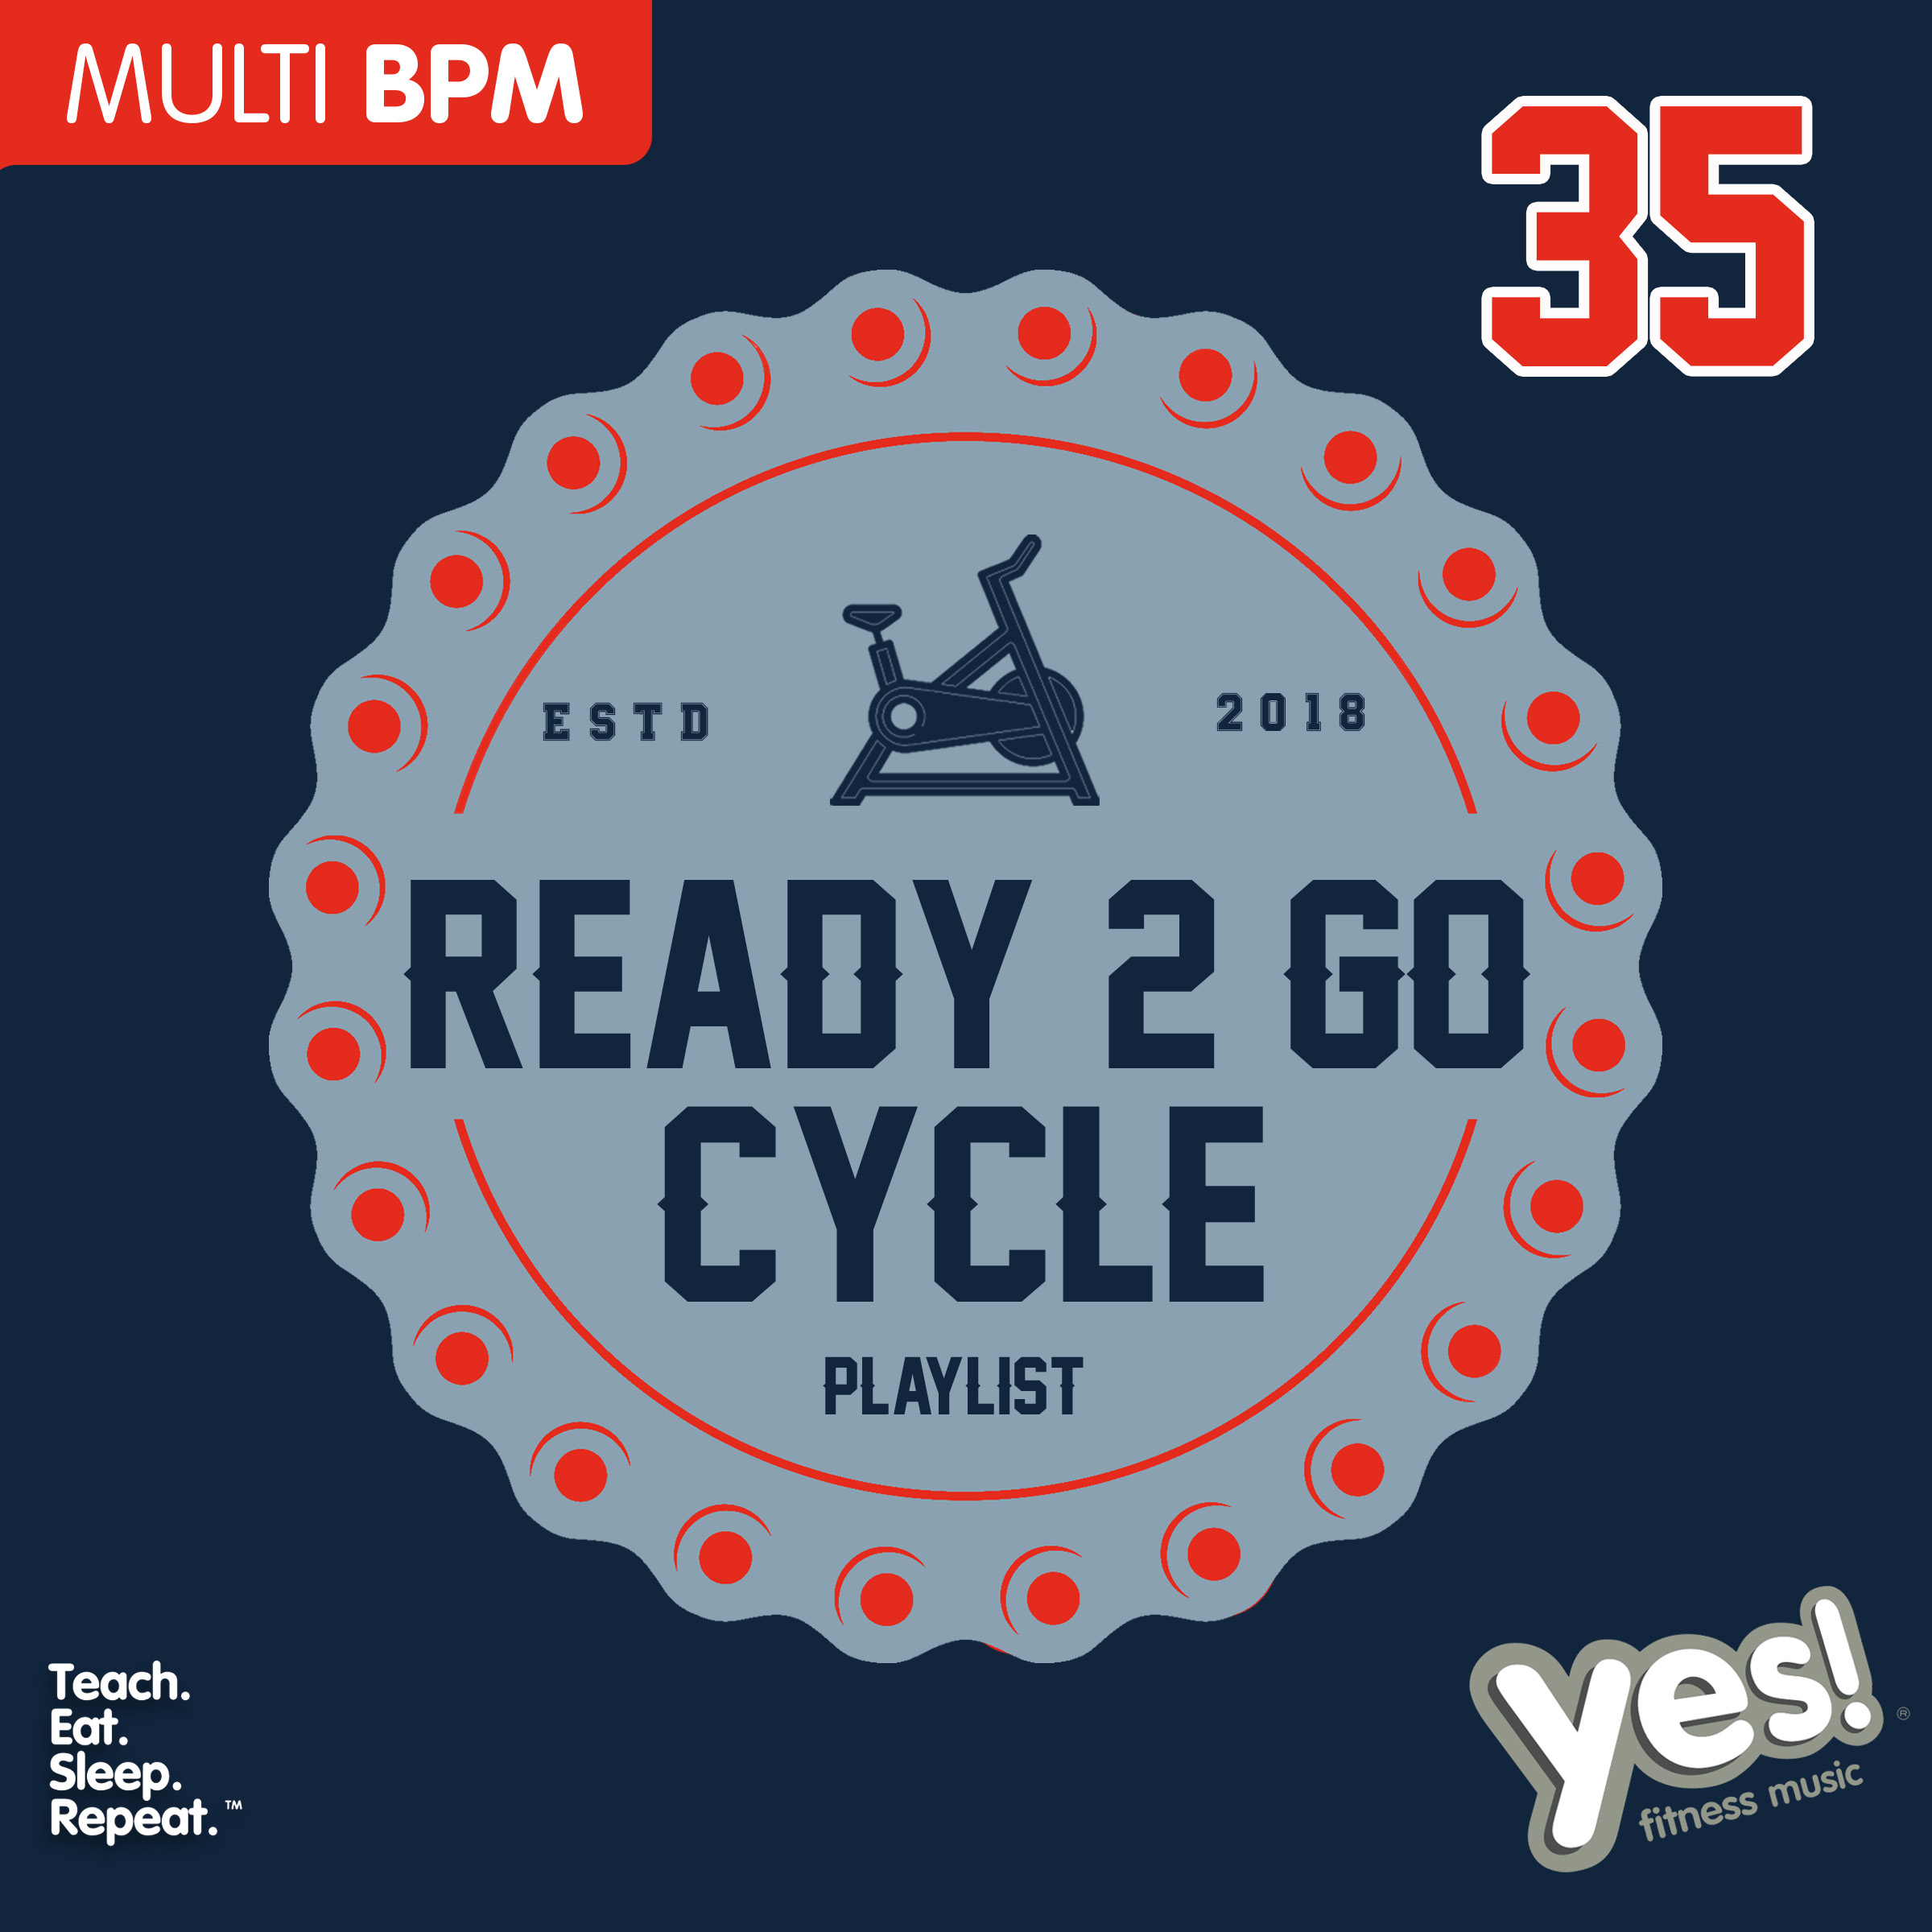 Ready 2 Go Cycle Playlist 35 : Yes! Fitness Music